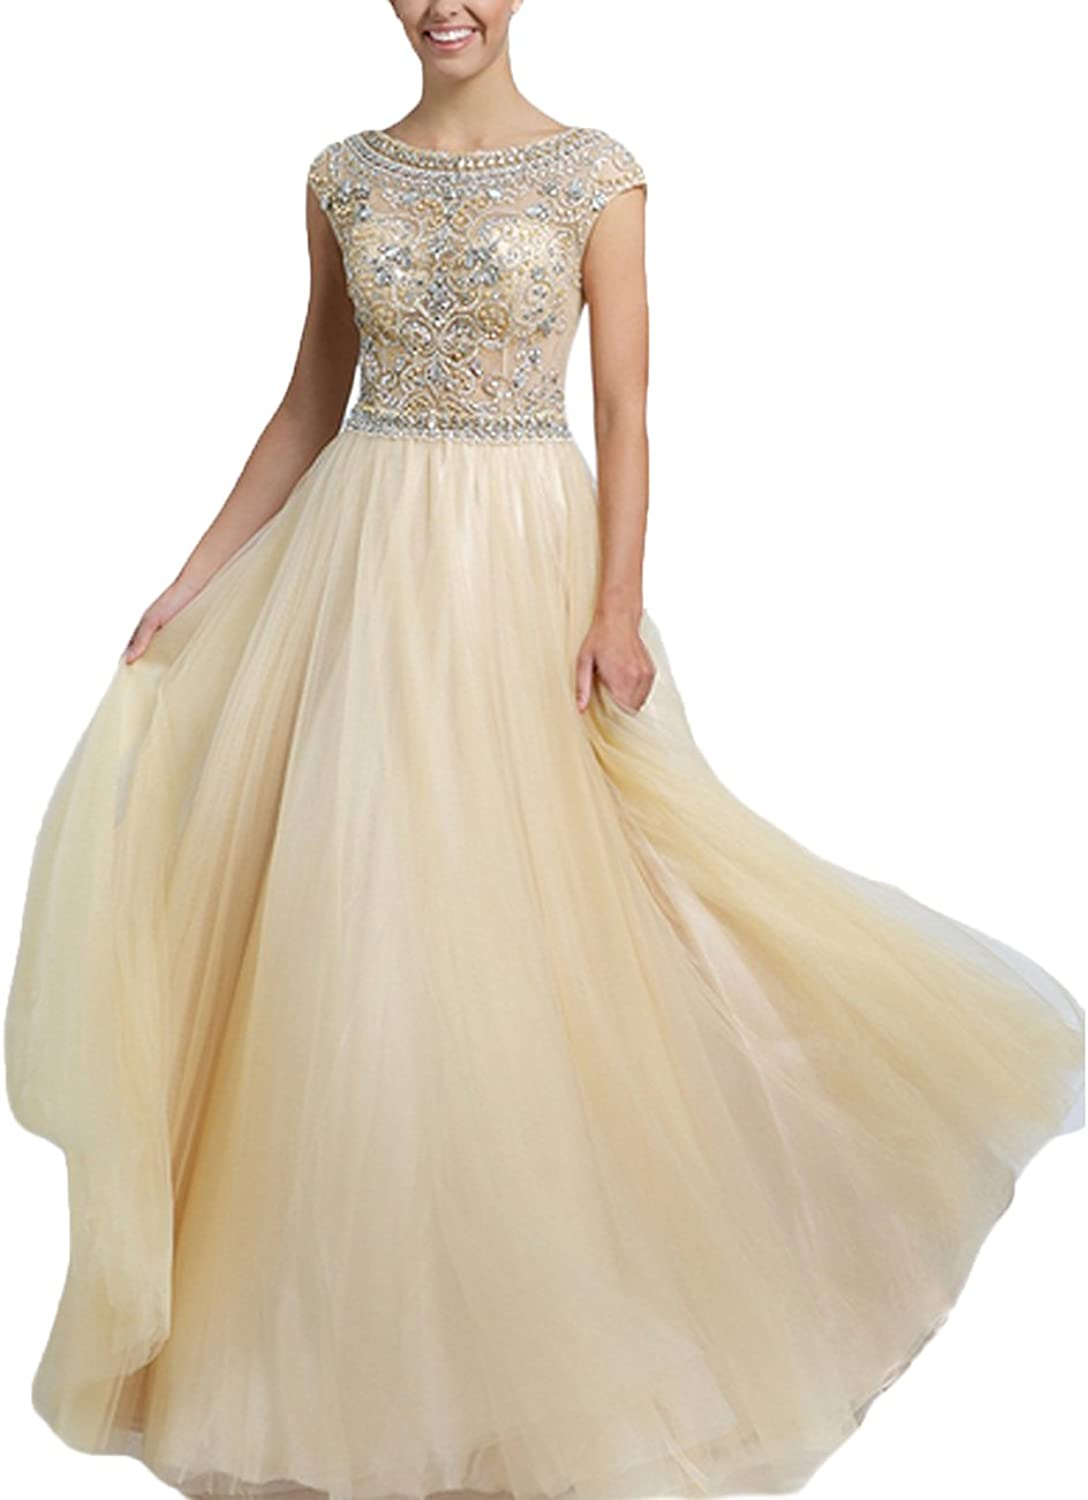 Datangep Women's Beading Bodice Deep VNeck Cap Sleeve Long Sweep Train Prom Dress